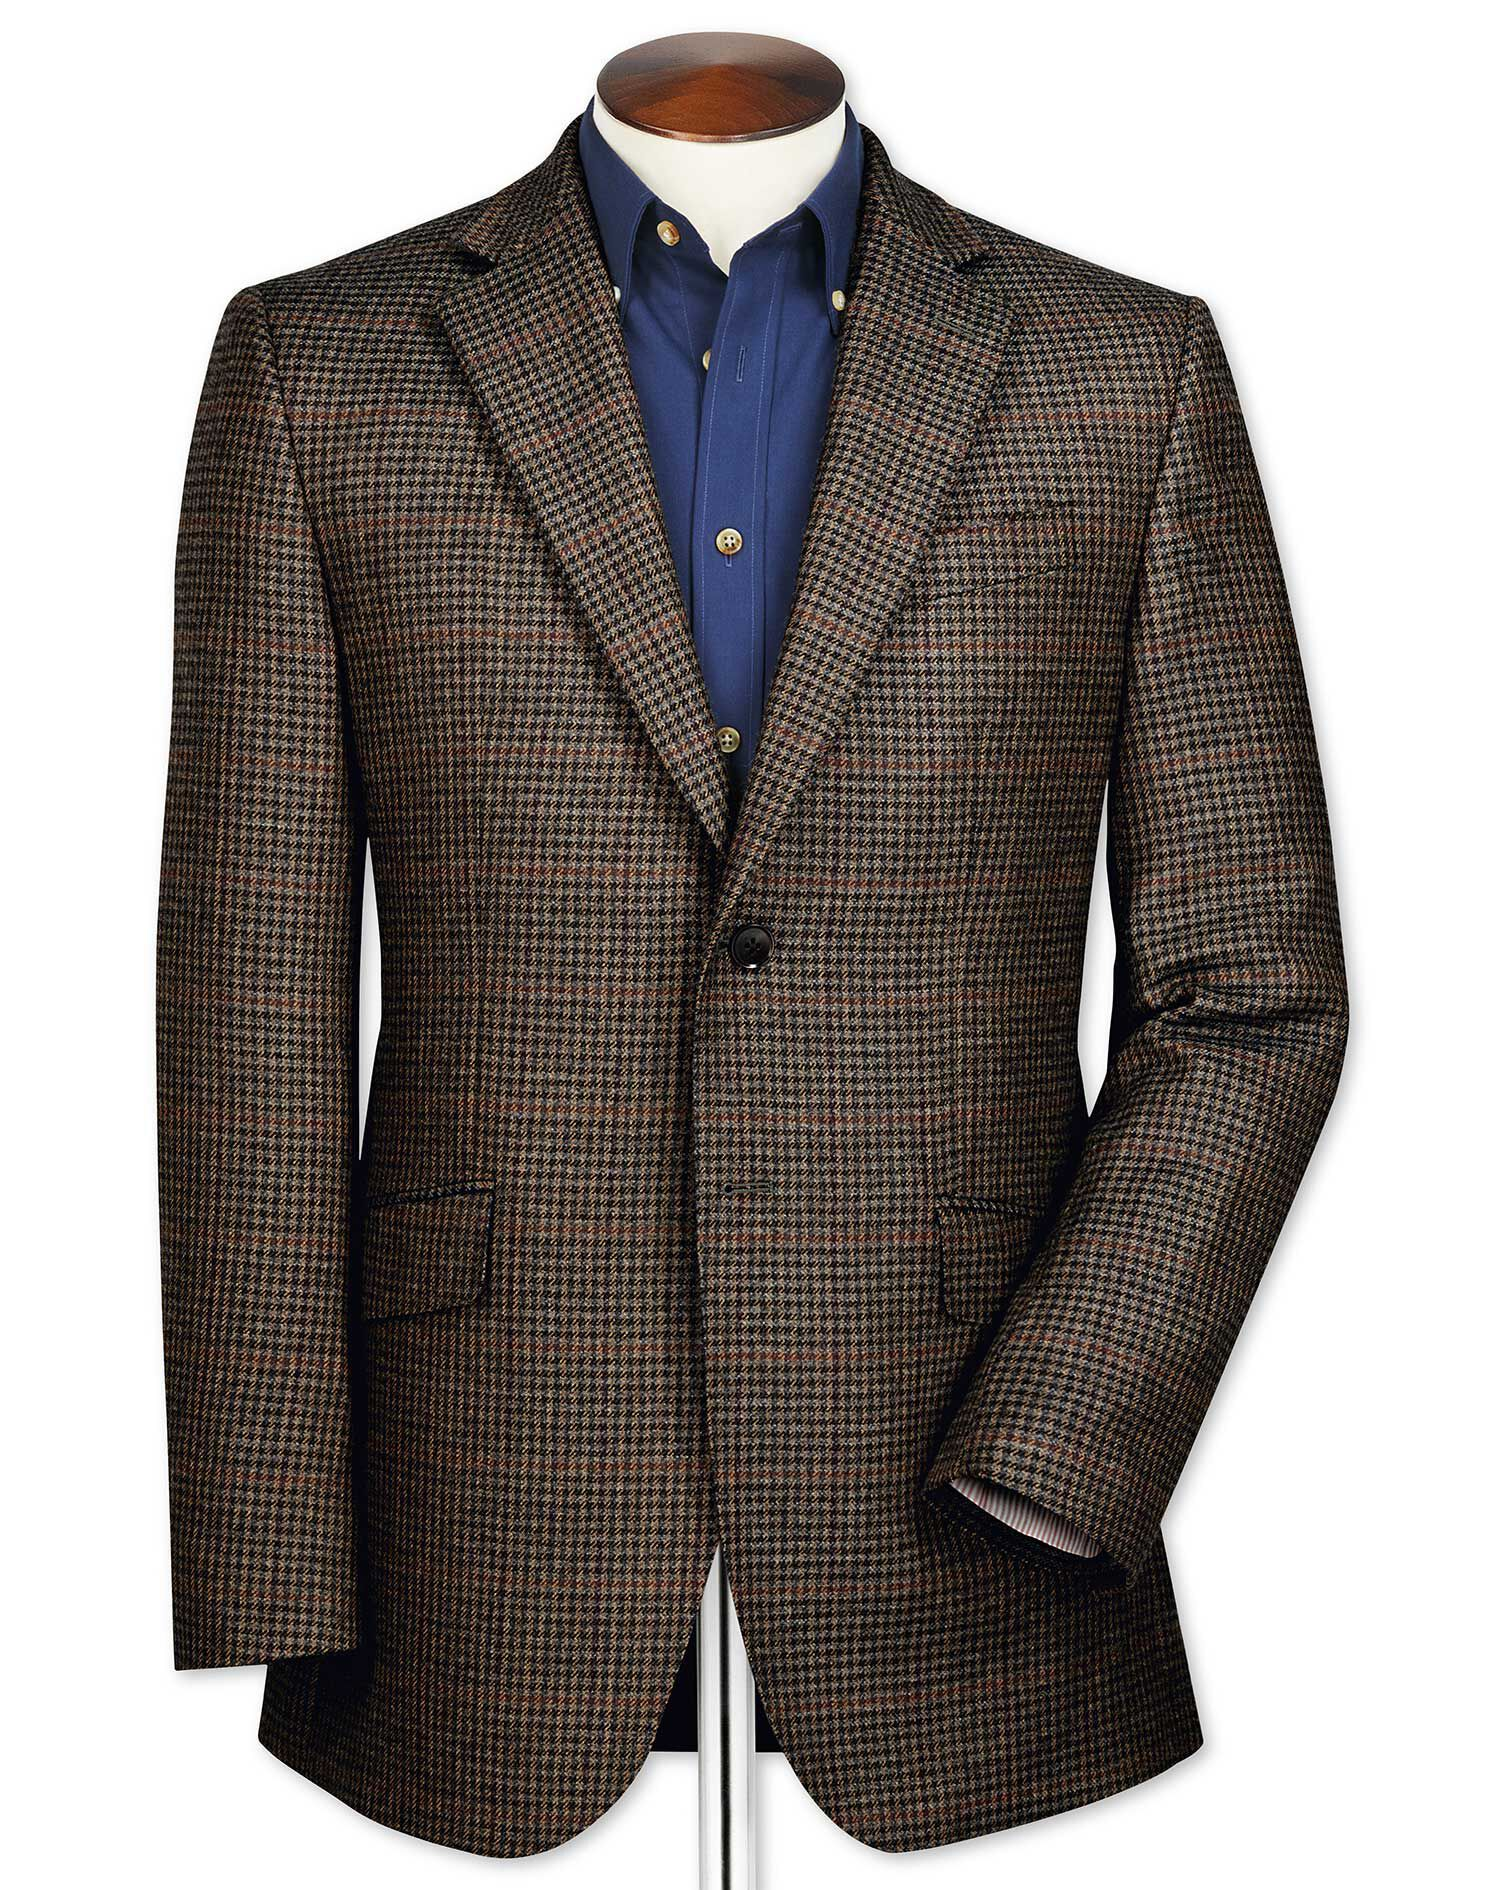 Slim Fit Brown Checkered Lambswool Wool Jacket Size 42 Long by Charles Tyrwhitt